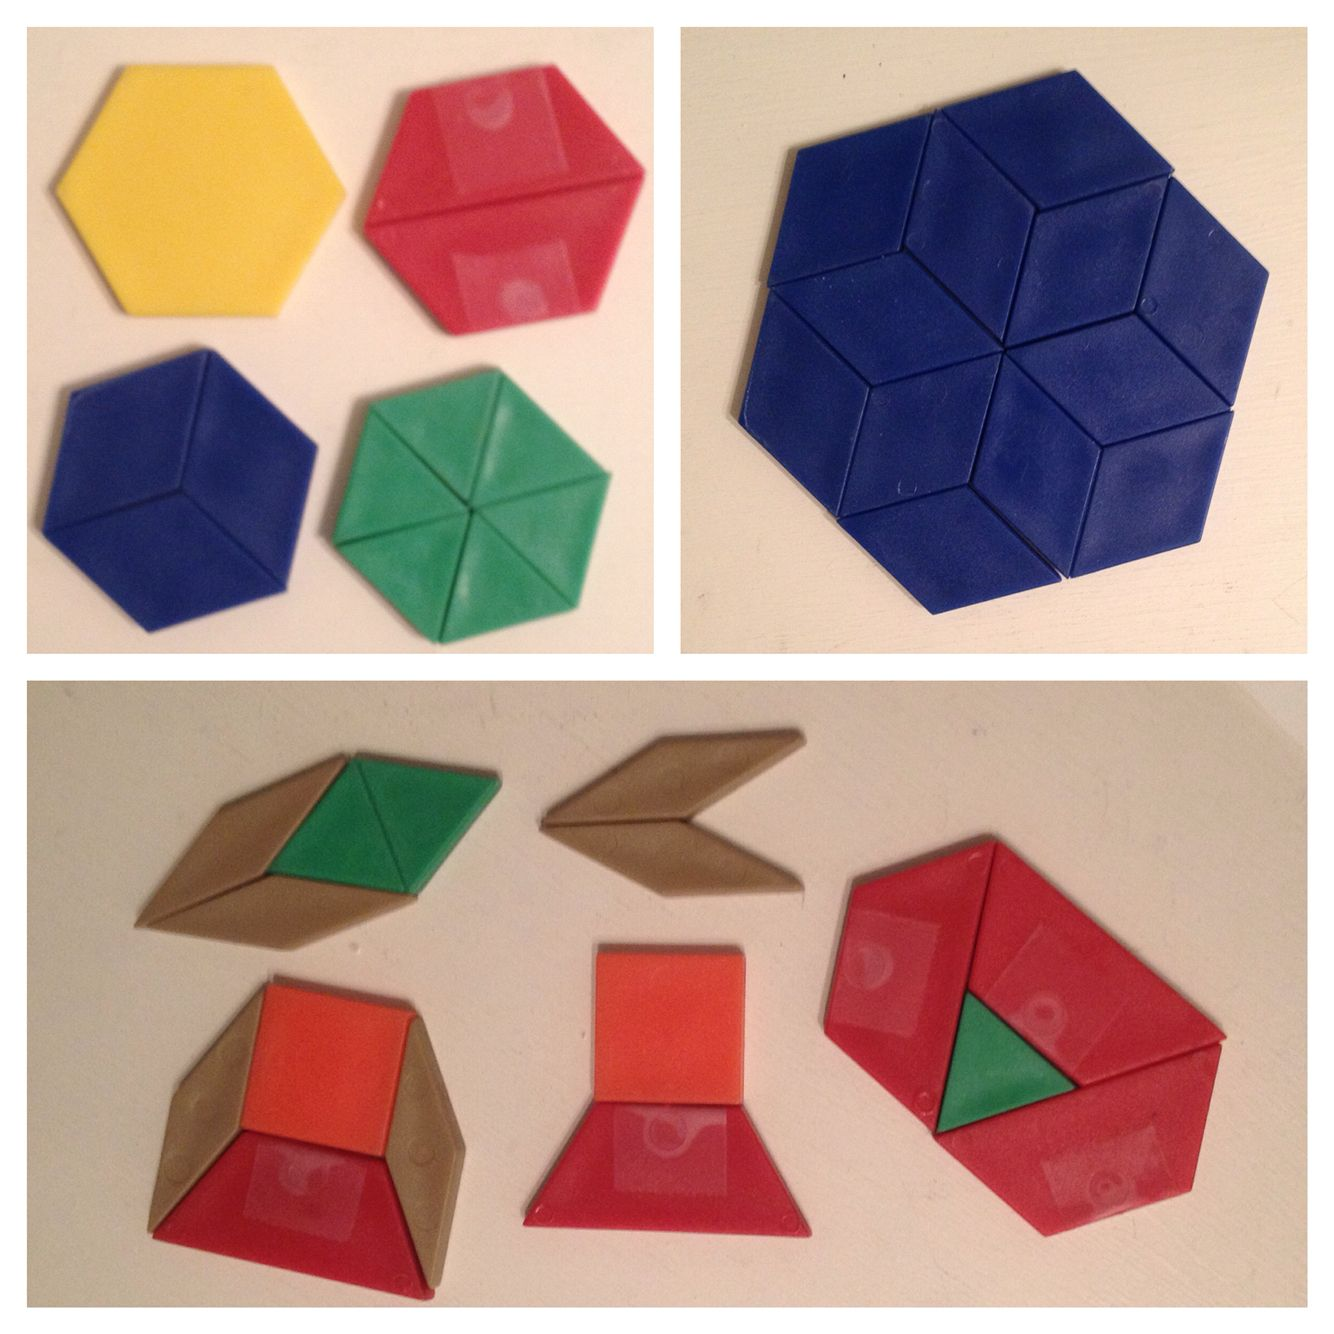 Build A Hexagon With Pattern Blocks To Introduce